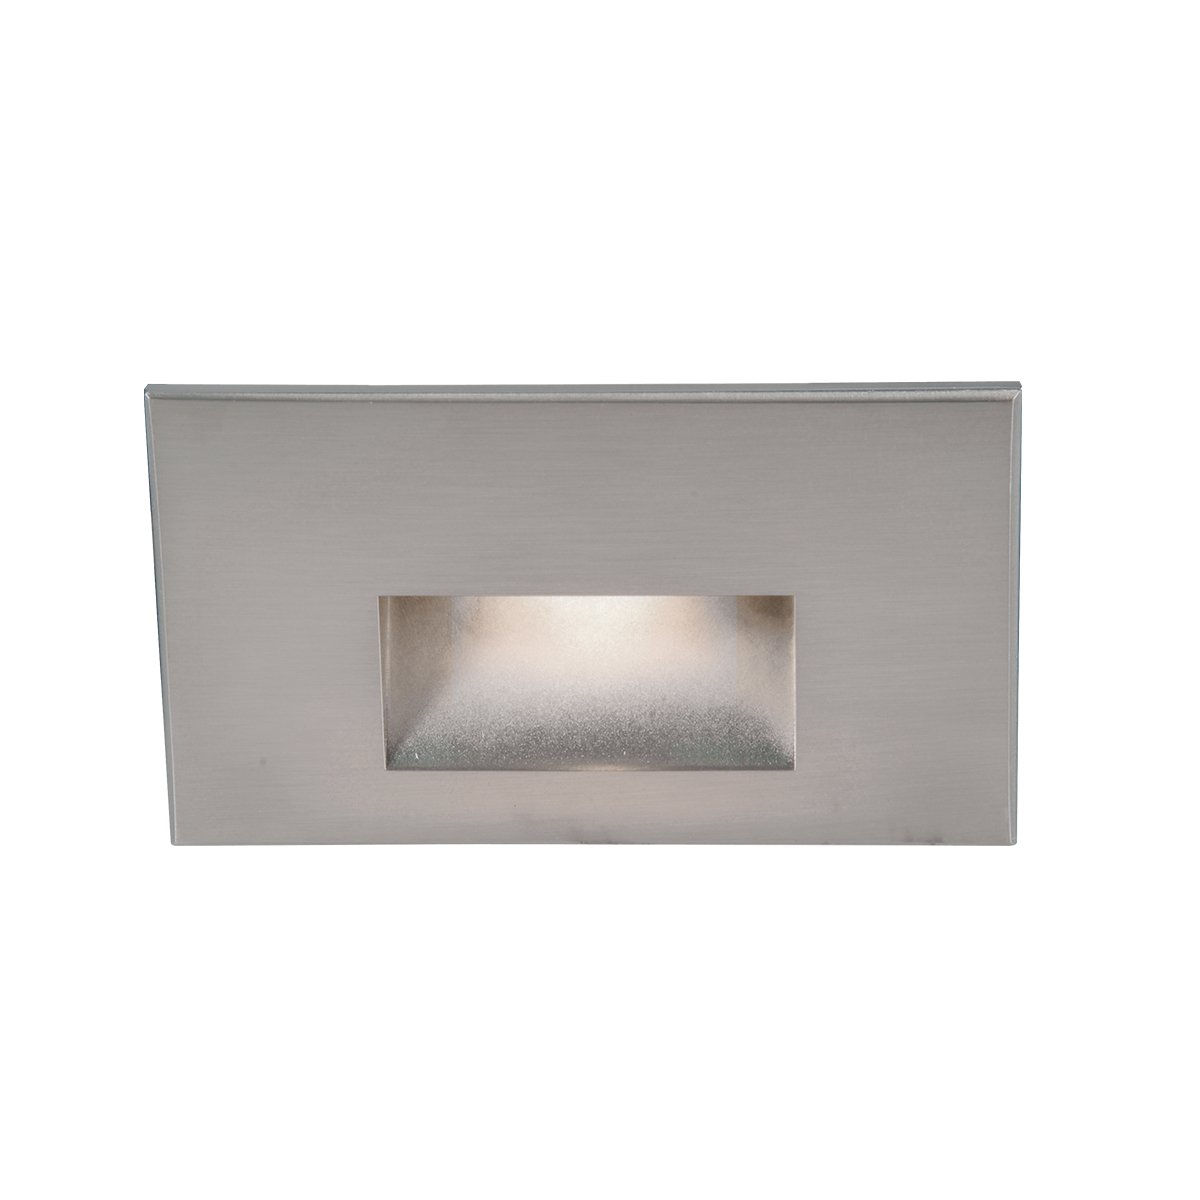 WAC Lighting WL-LED100F-C-SS 277V Horizontal Step Light, White 3000K